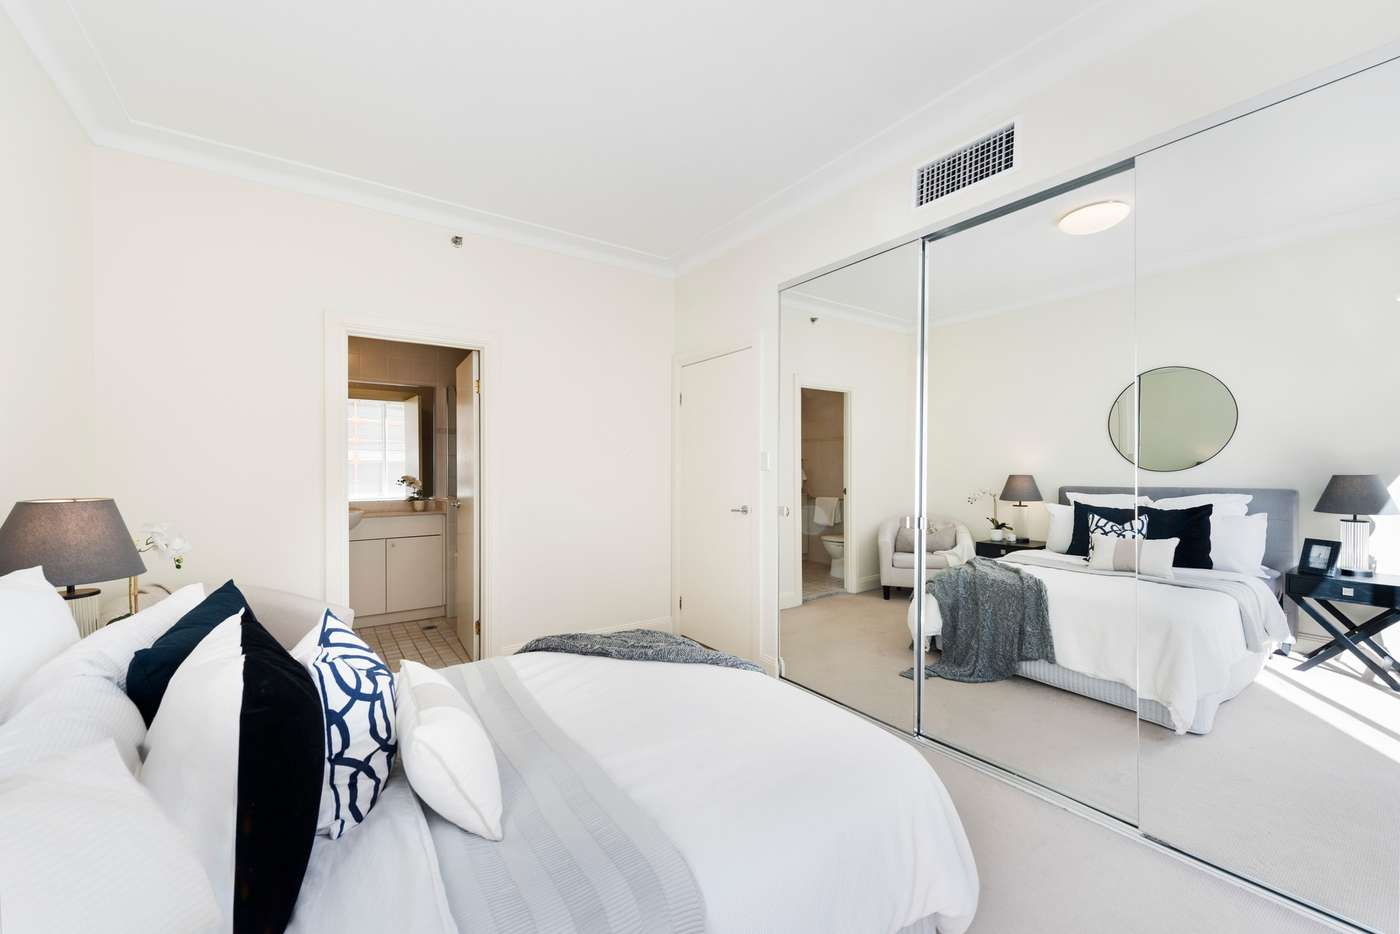 Fifth view of Homely apartment listing, 1410/38-42 Bridge Street, Sydney NSW 2000